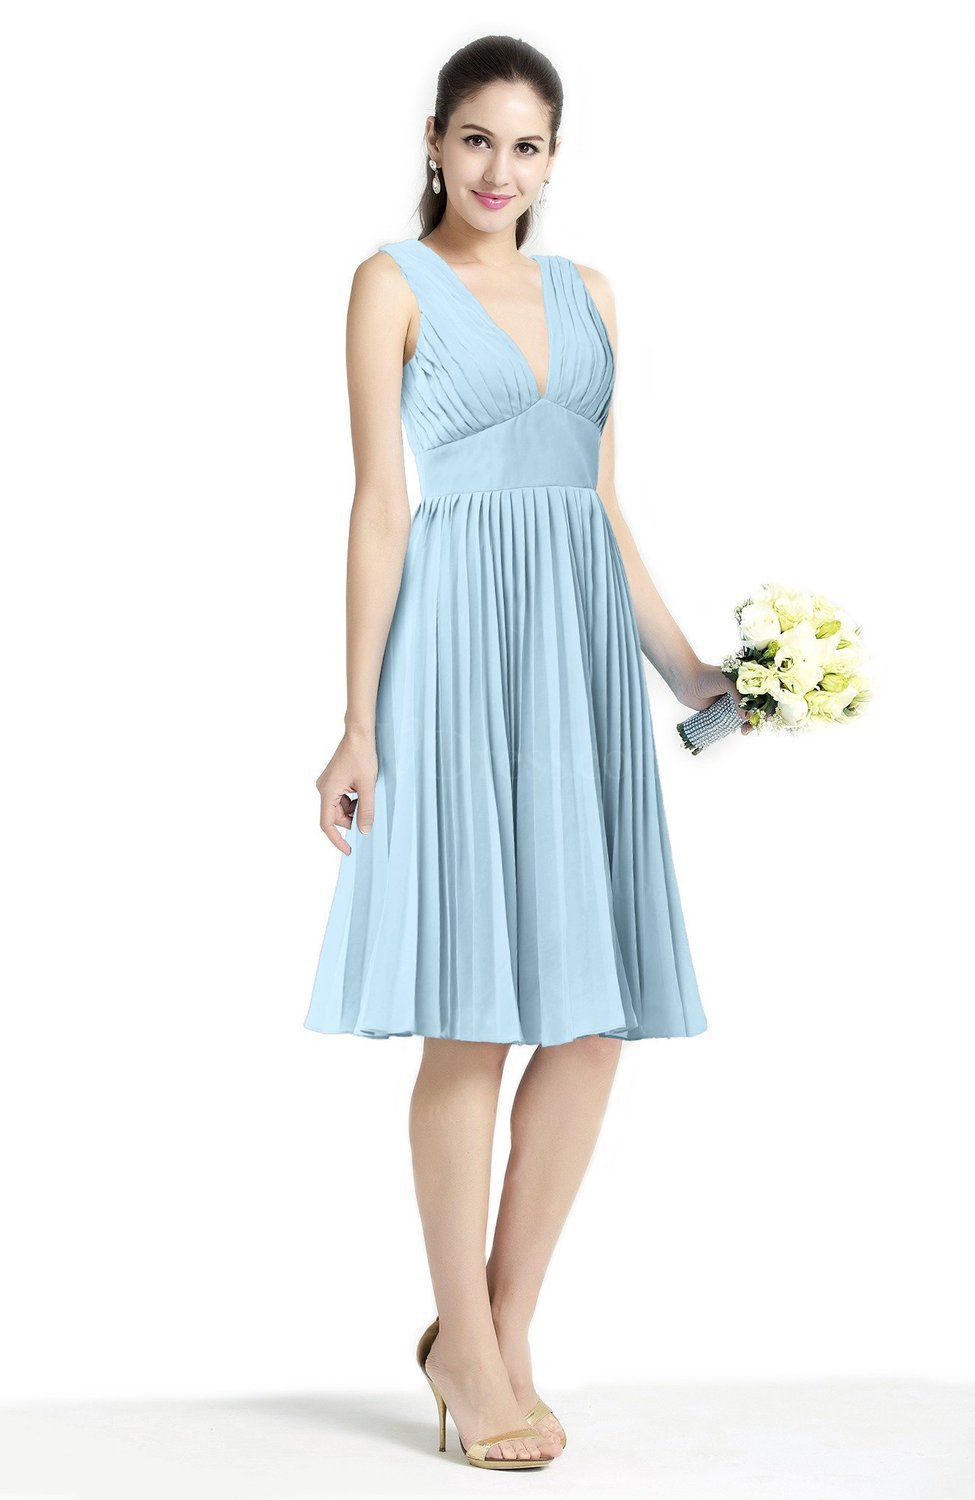 ad52c06e7 Ice Blue Plain A-line V-neck Zip up Chiffon Sash Plus Size Bridesmaid  Dresses (Style D09944)